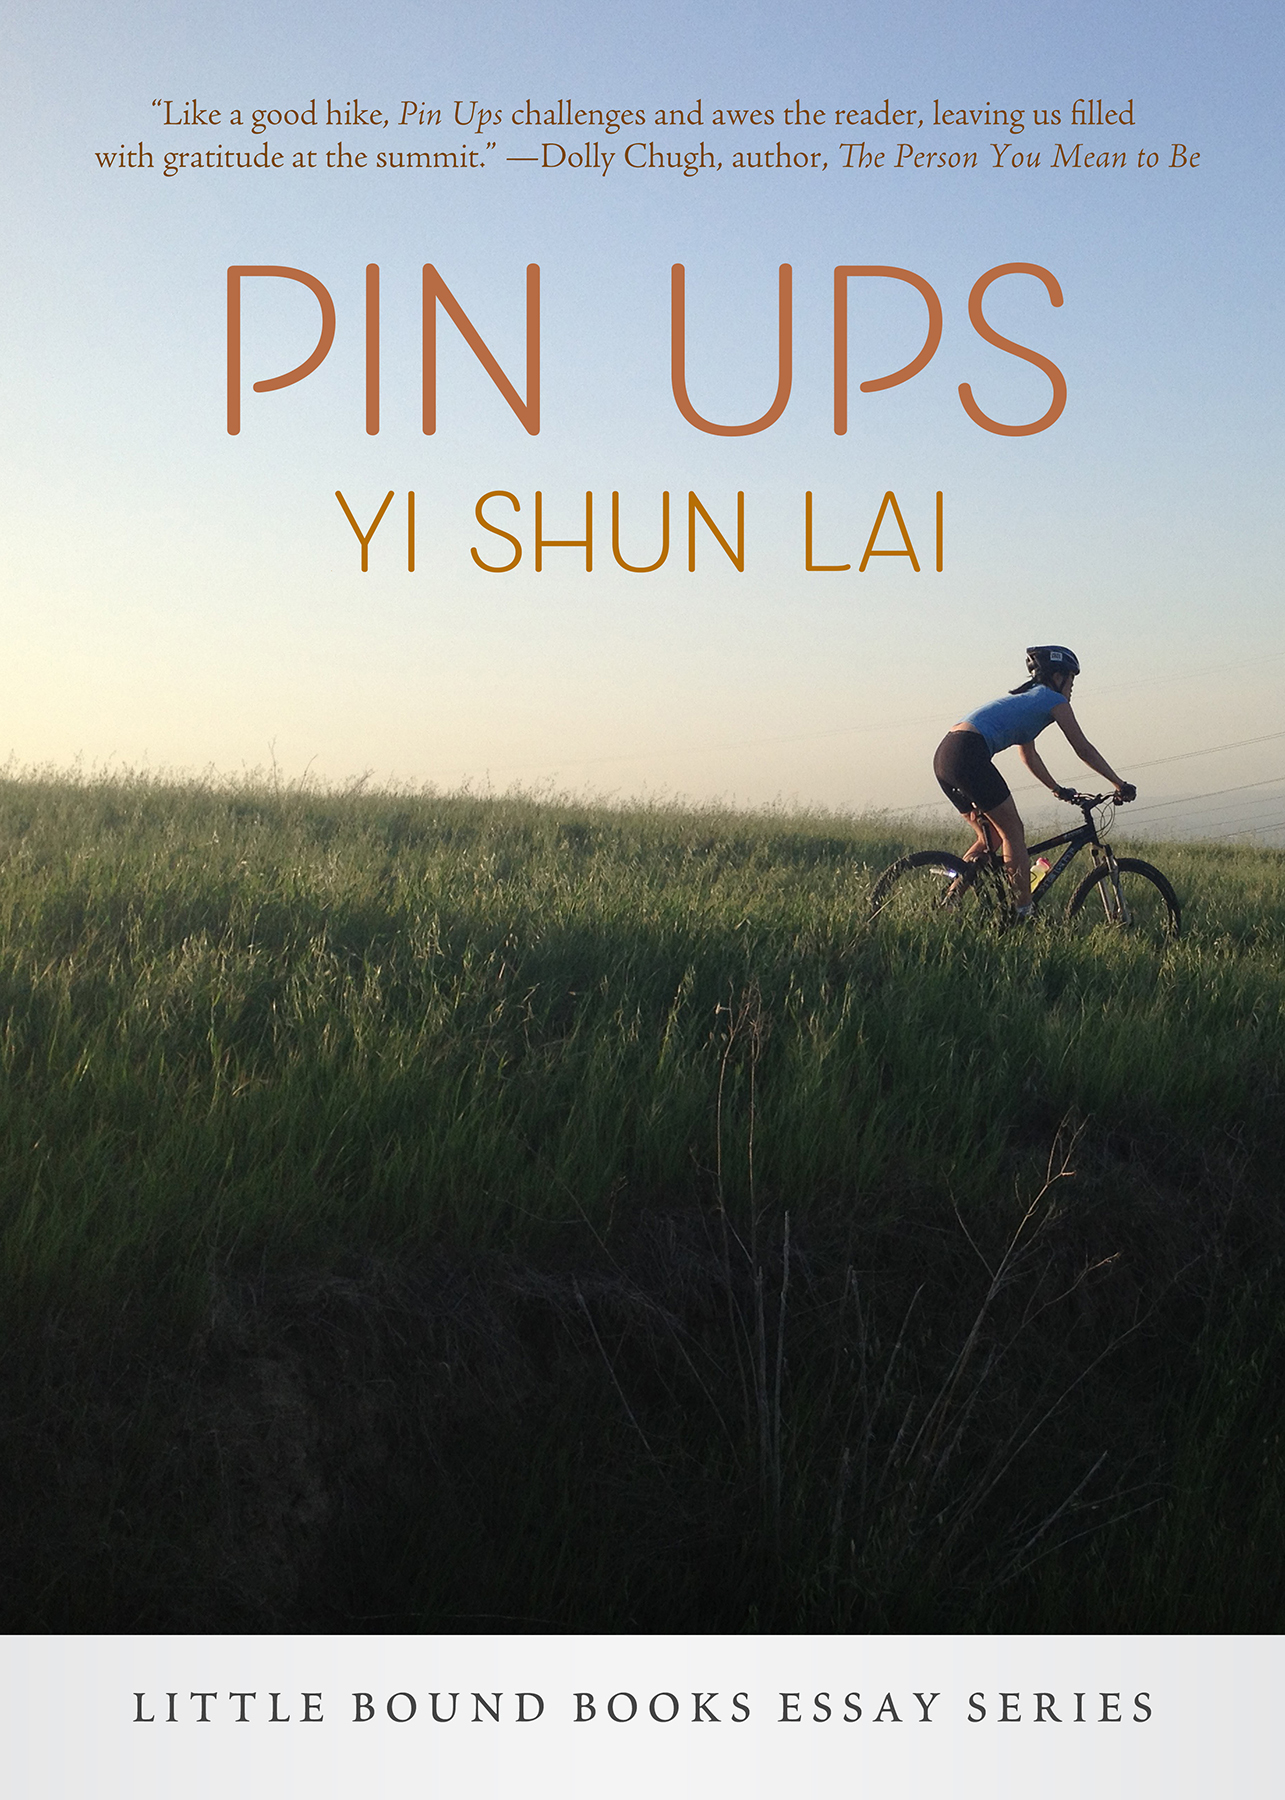 Cover of book; woman riding on mountain bike down grassy slope